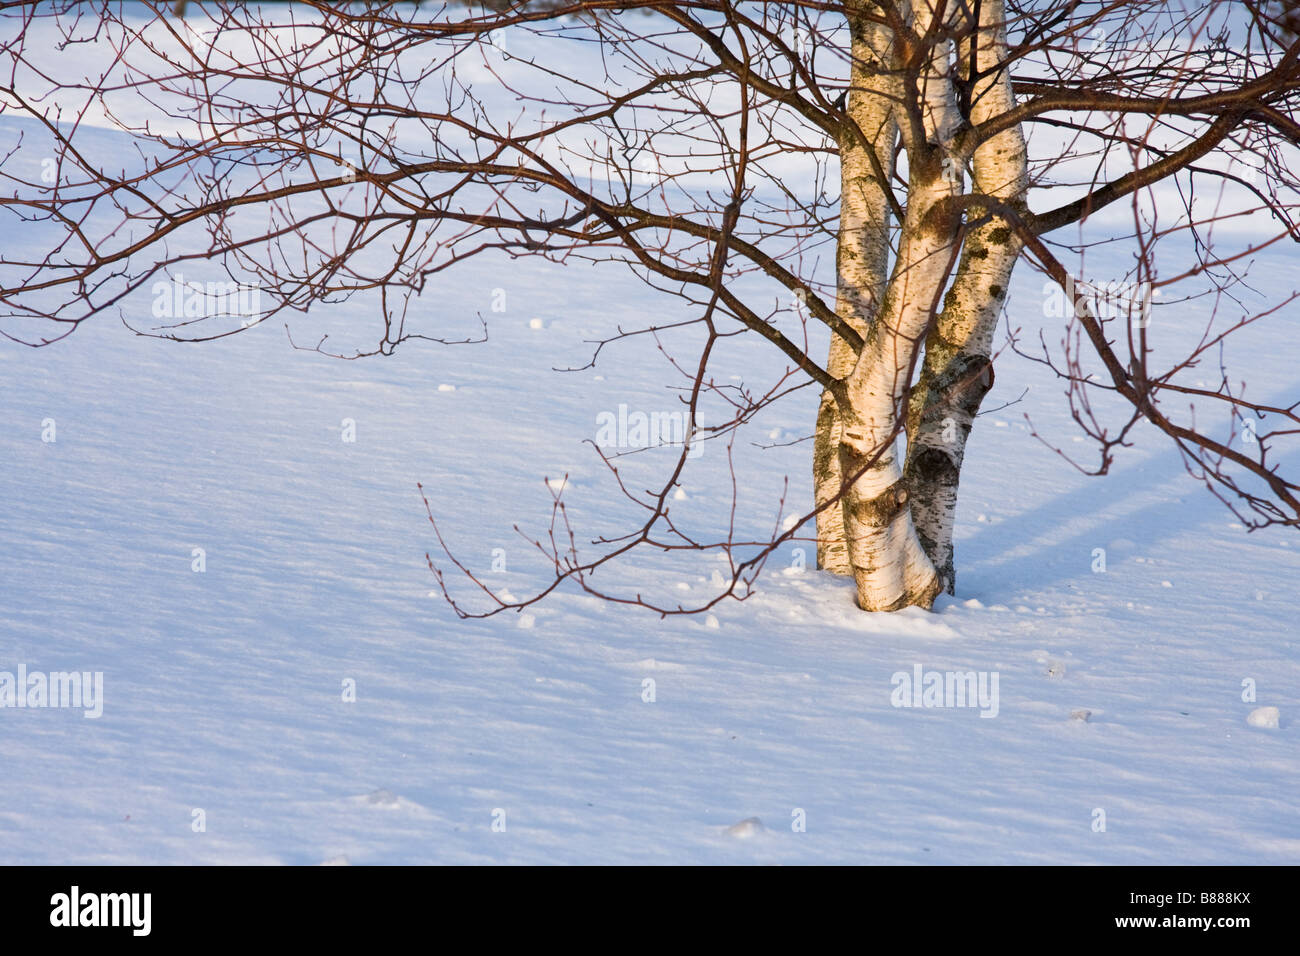 Small birch trees in winter lit by setting sun - Stock Image